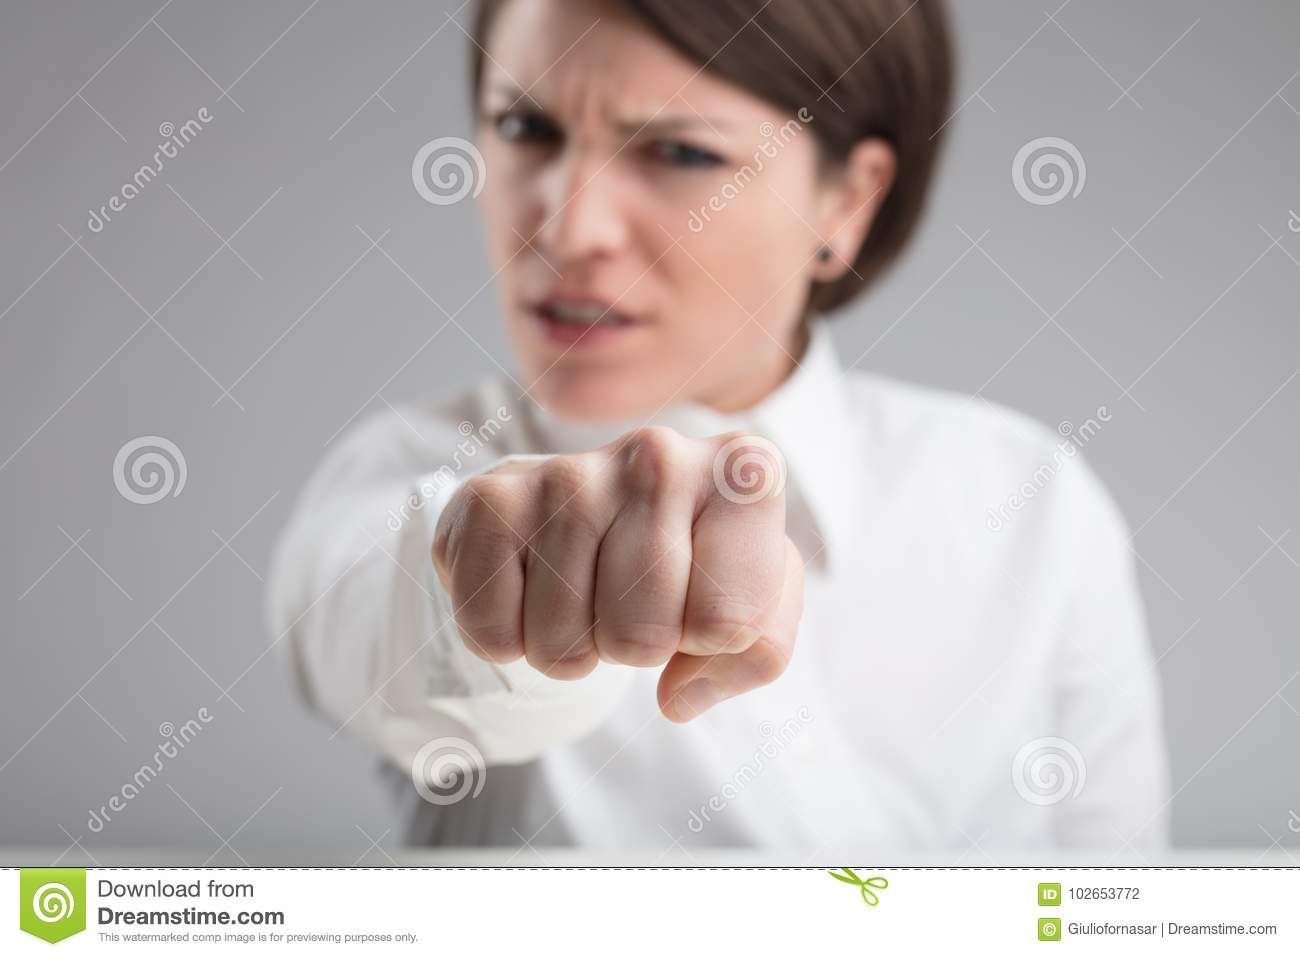 Focus on a punch of an angry woman